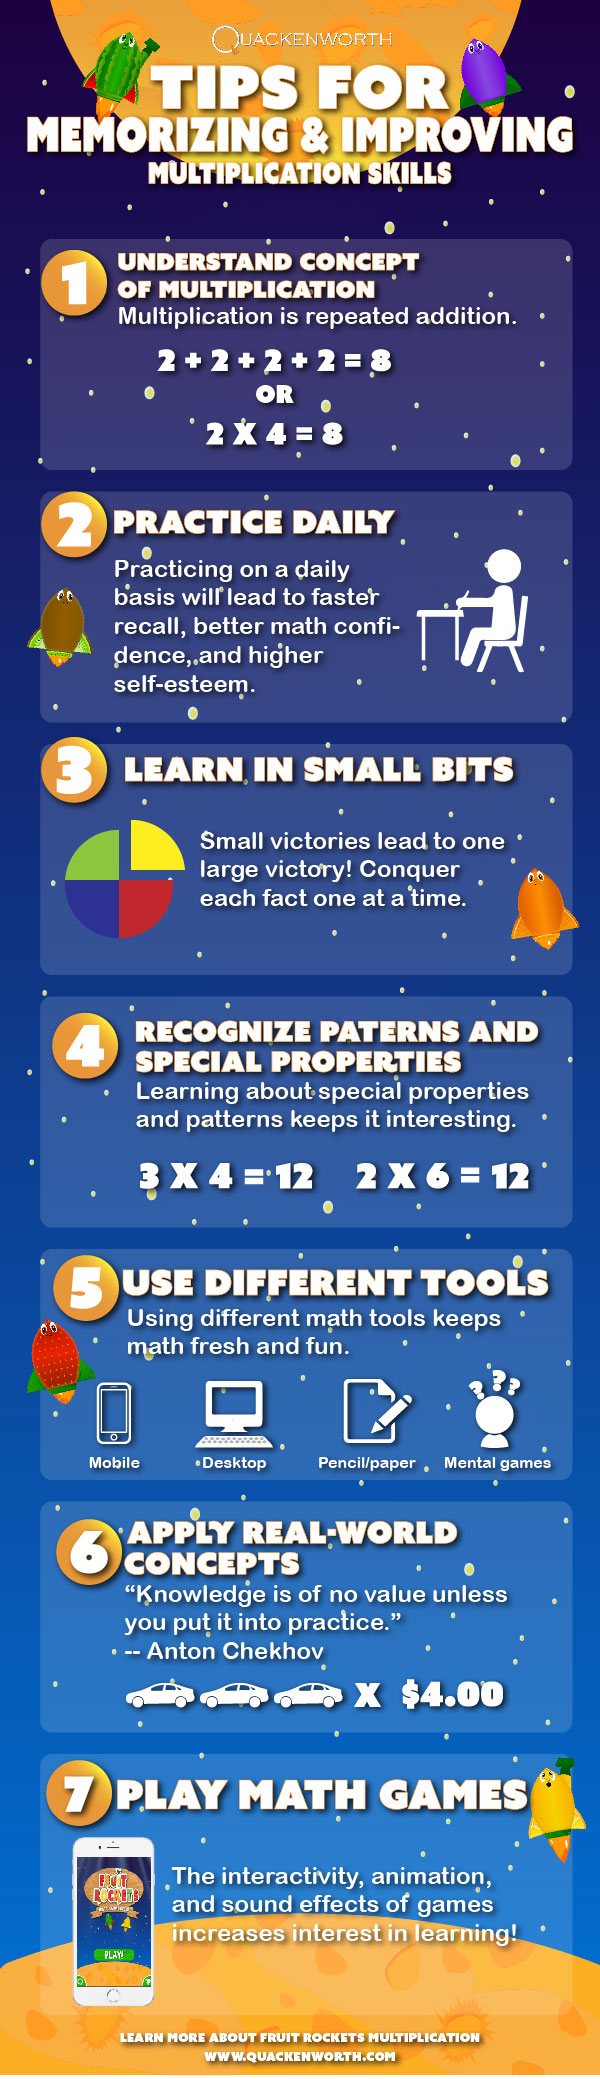 Tips for improving multiplication and times tables.